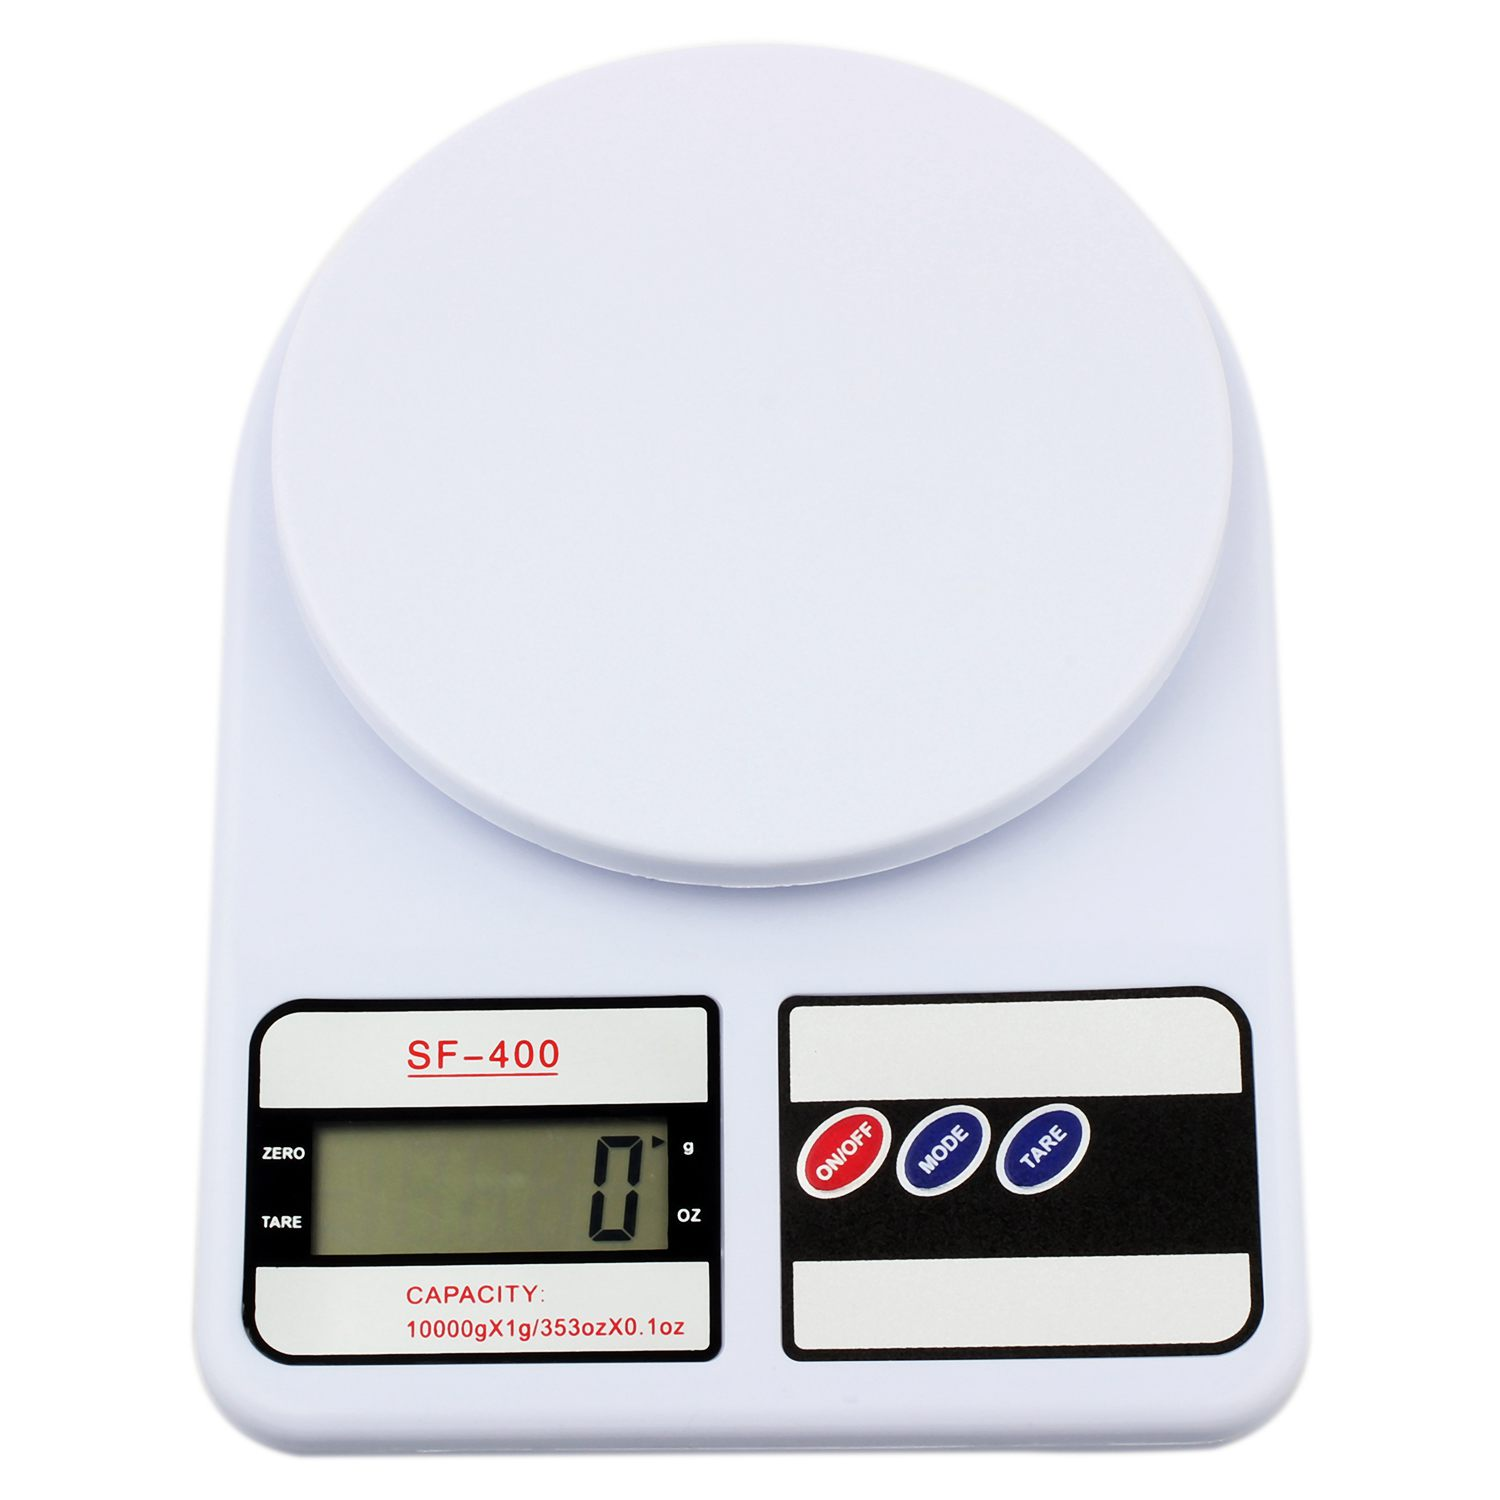 10kg digital kitchen scale food scale cooking tool10kg digital kitchen scale food scale cooking tool